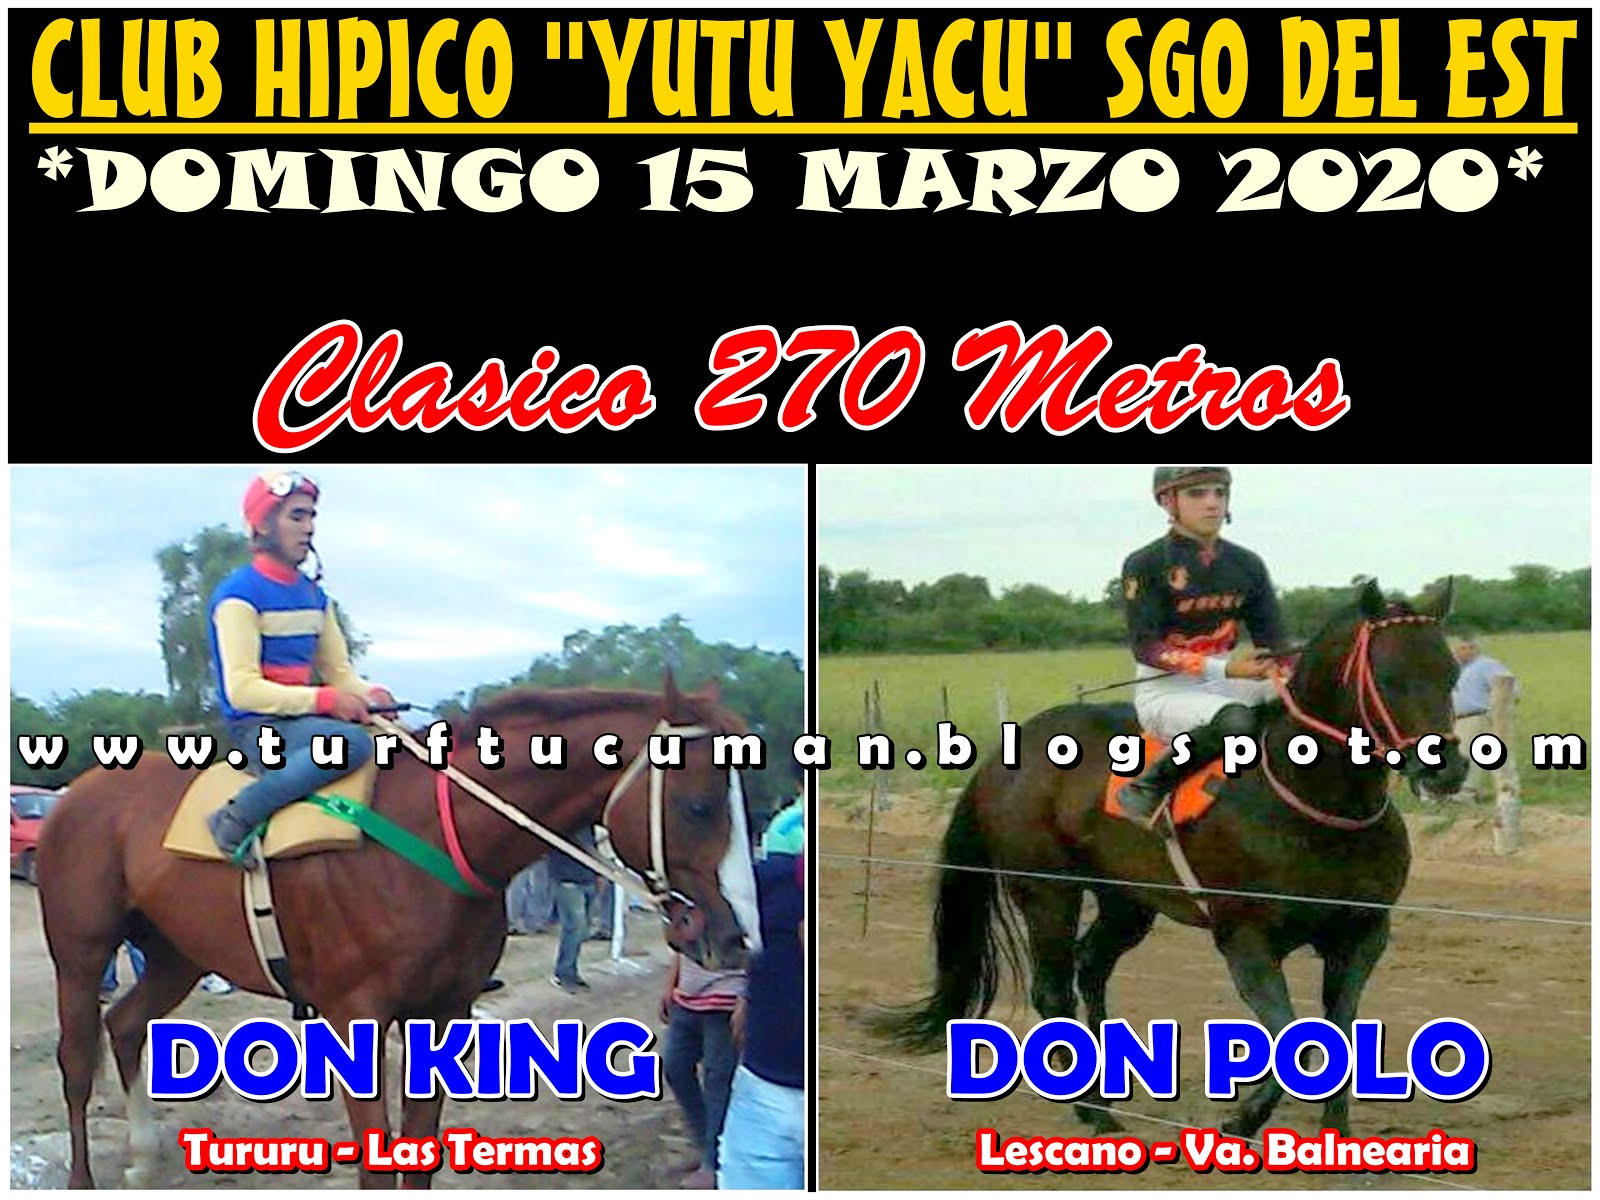 DON POLO VS DON KING